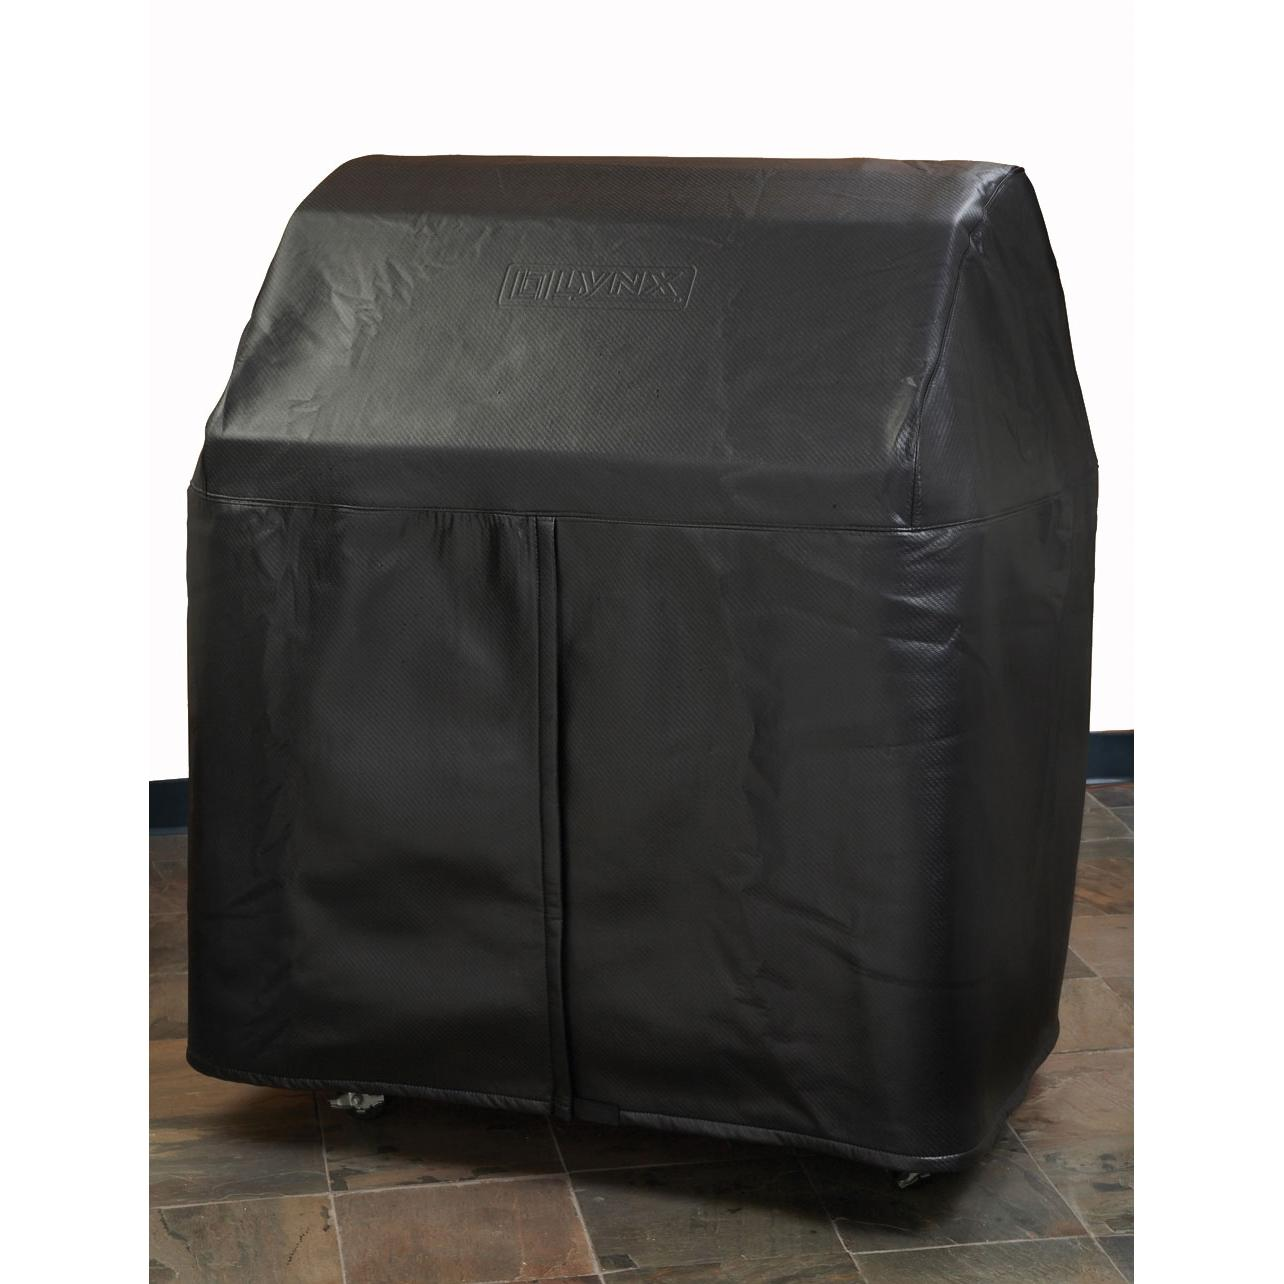 Lynx Custom Grill Cover For 30 Inch Gas Grill On Cart With Side Burners